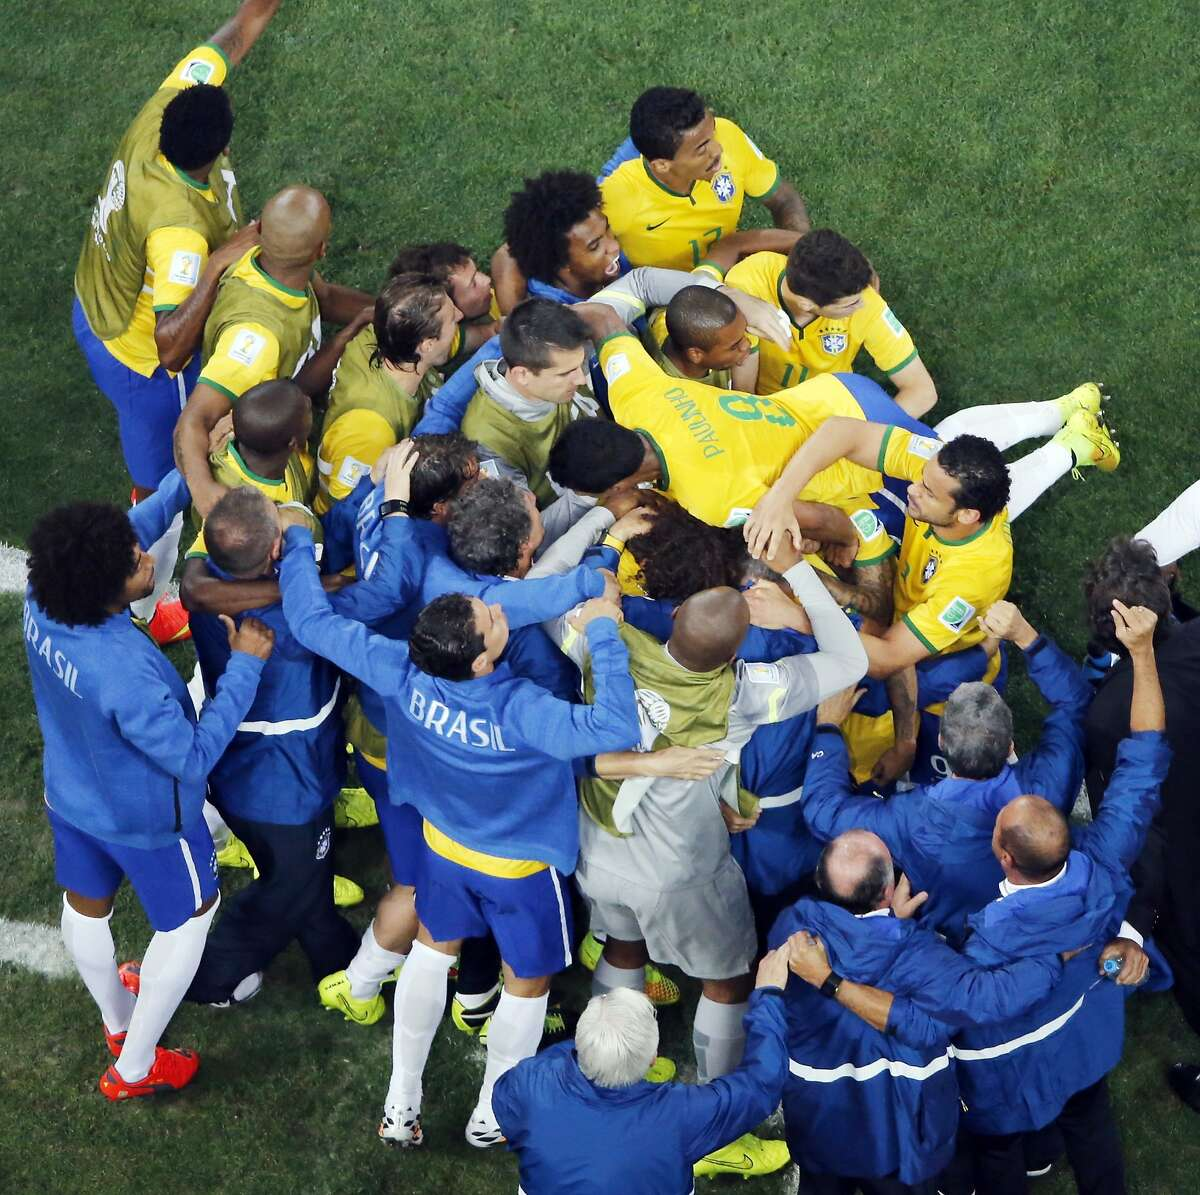 Brazil players celebrate Neymar's goal during the group A World Cup soccer match between Brazil and Croatia, the opening game of the tournament, in the Itaquerao Stadium in Sao Paulo, Brazil, Thursday, June 12, 2014.